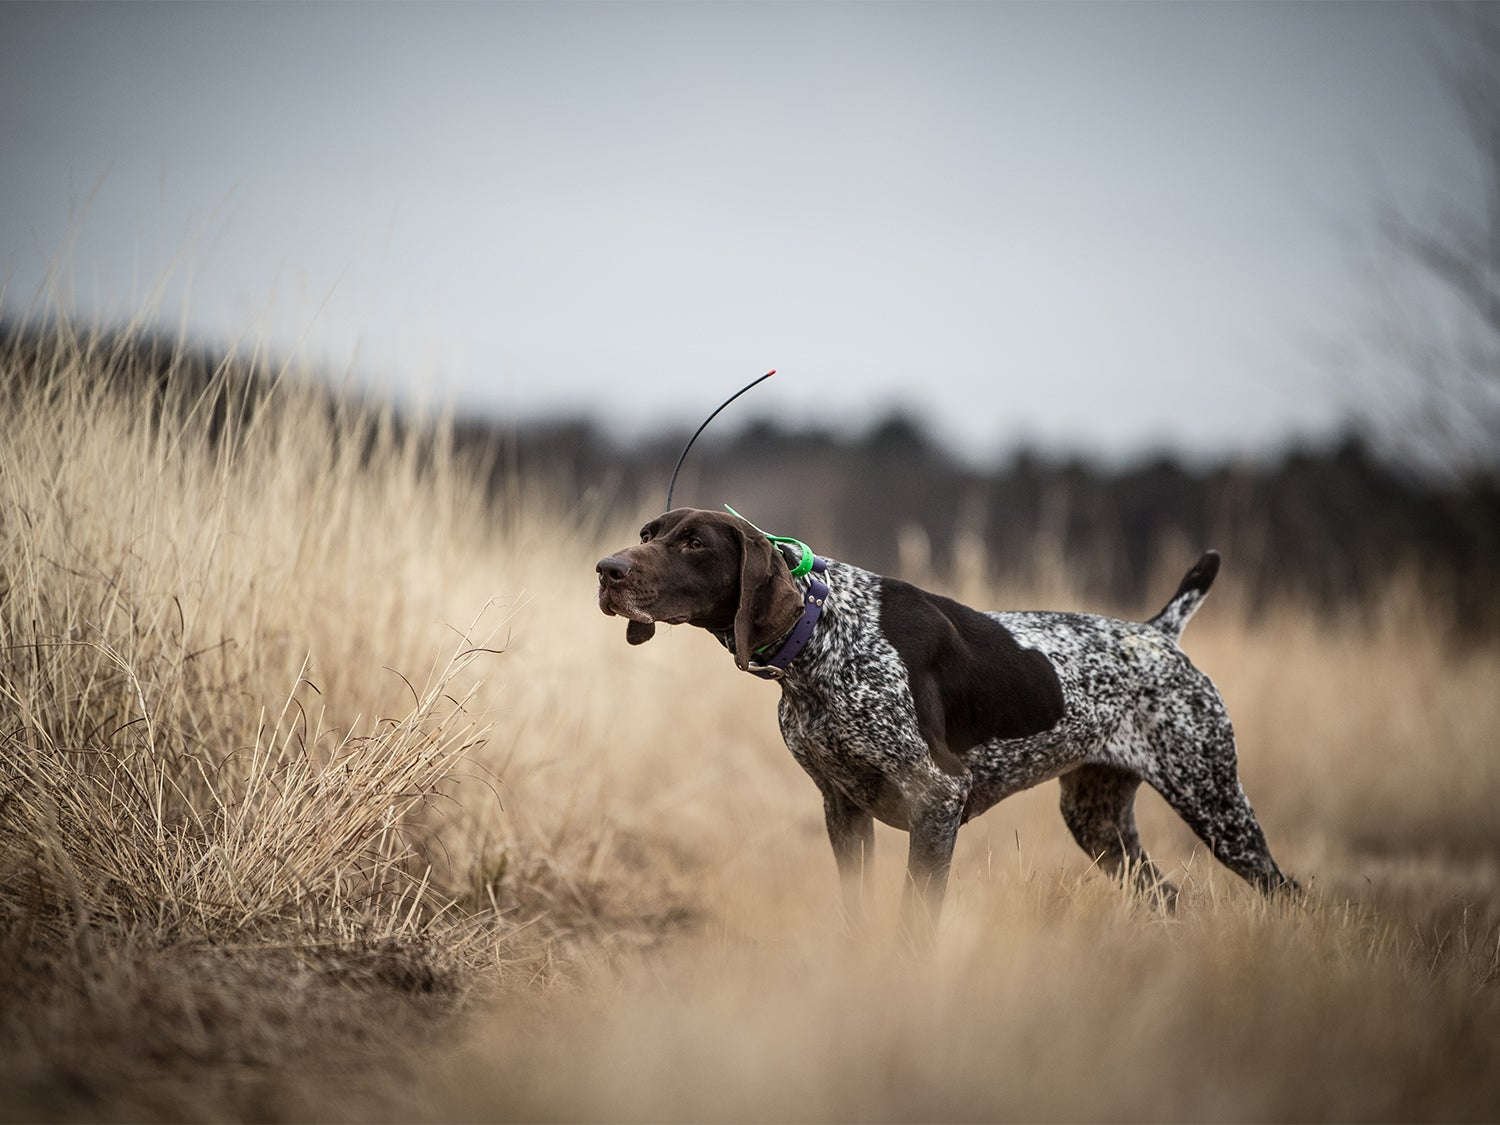 A german shorthaired pointer in an open field.